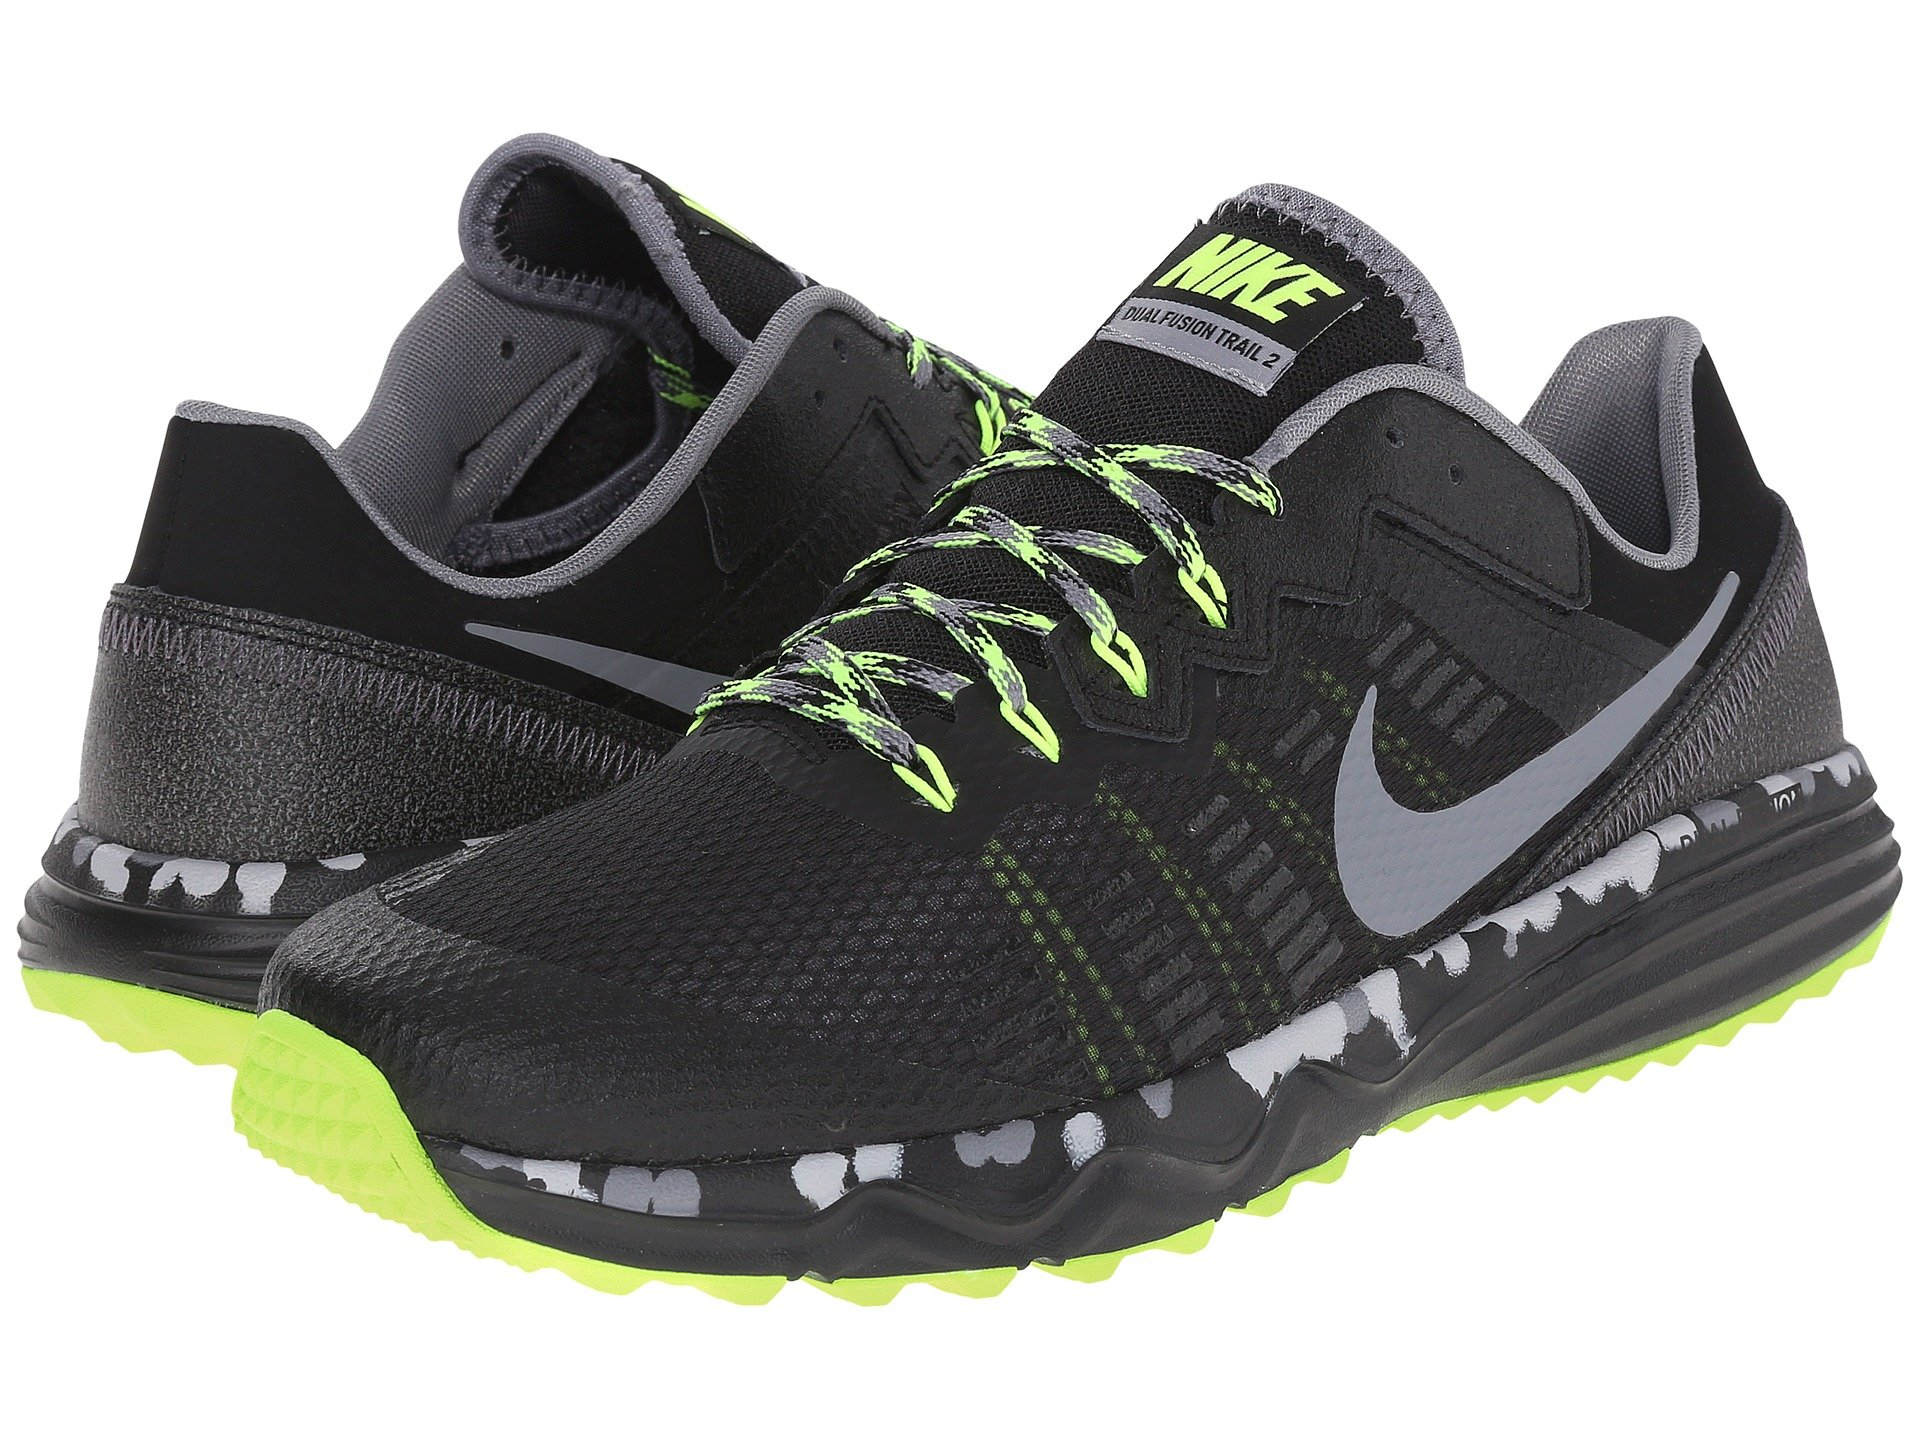 View More Like This Nike - Dual Fusion Trail 2